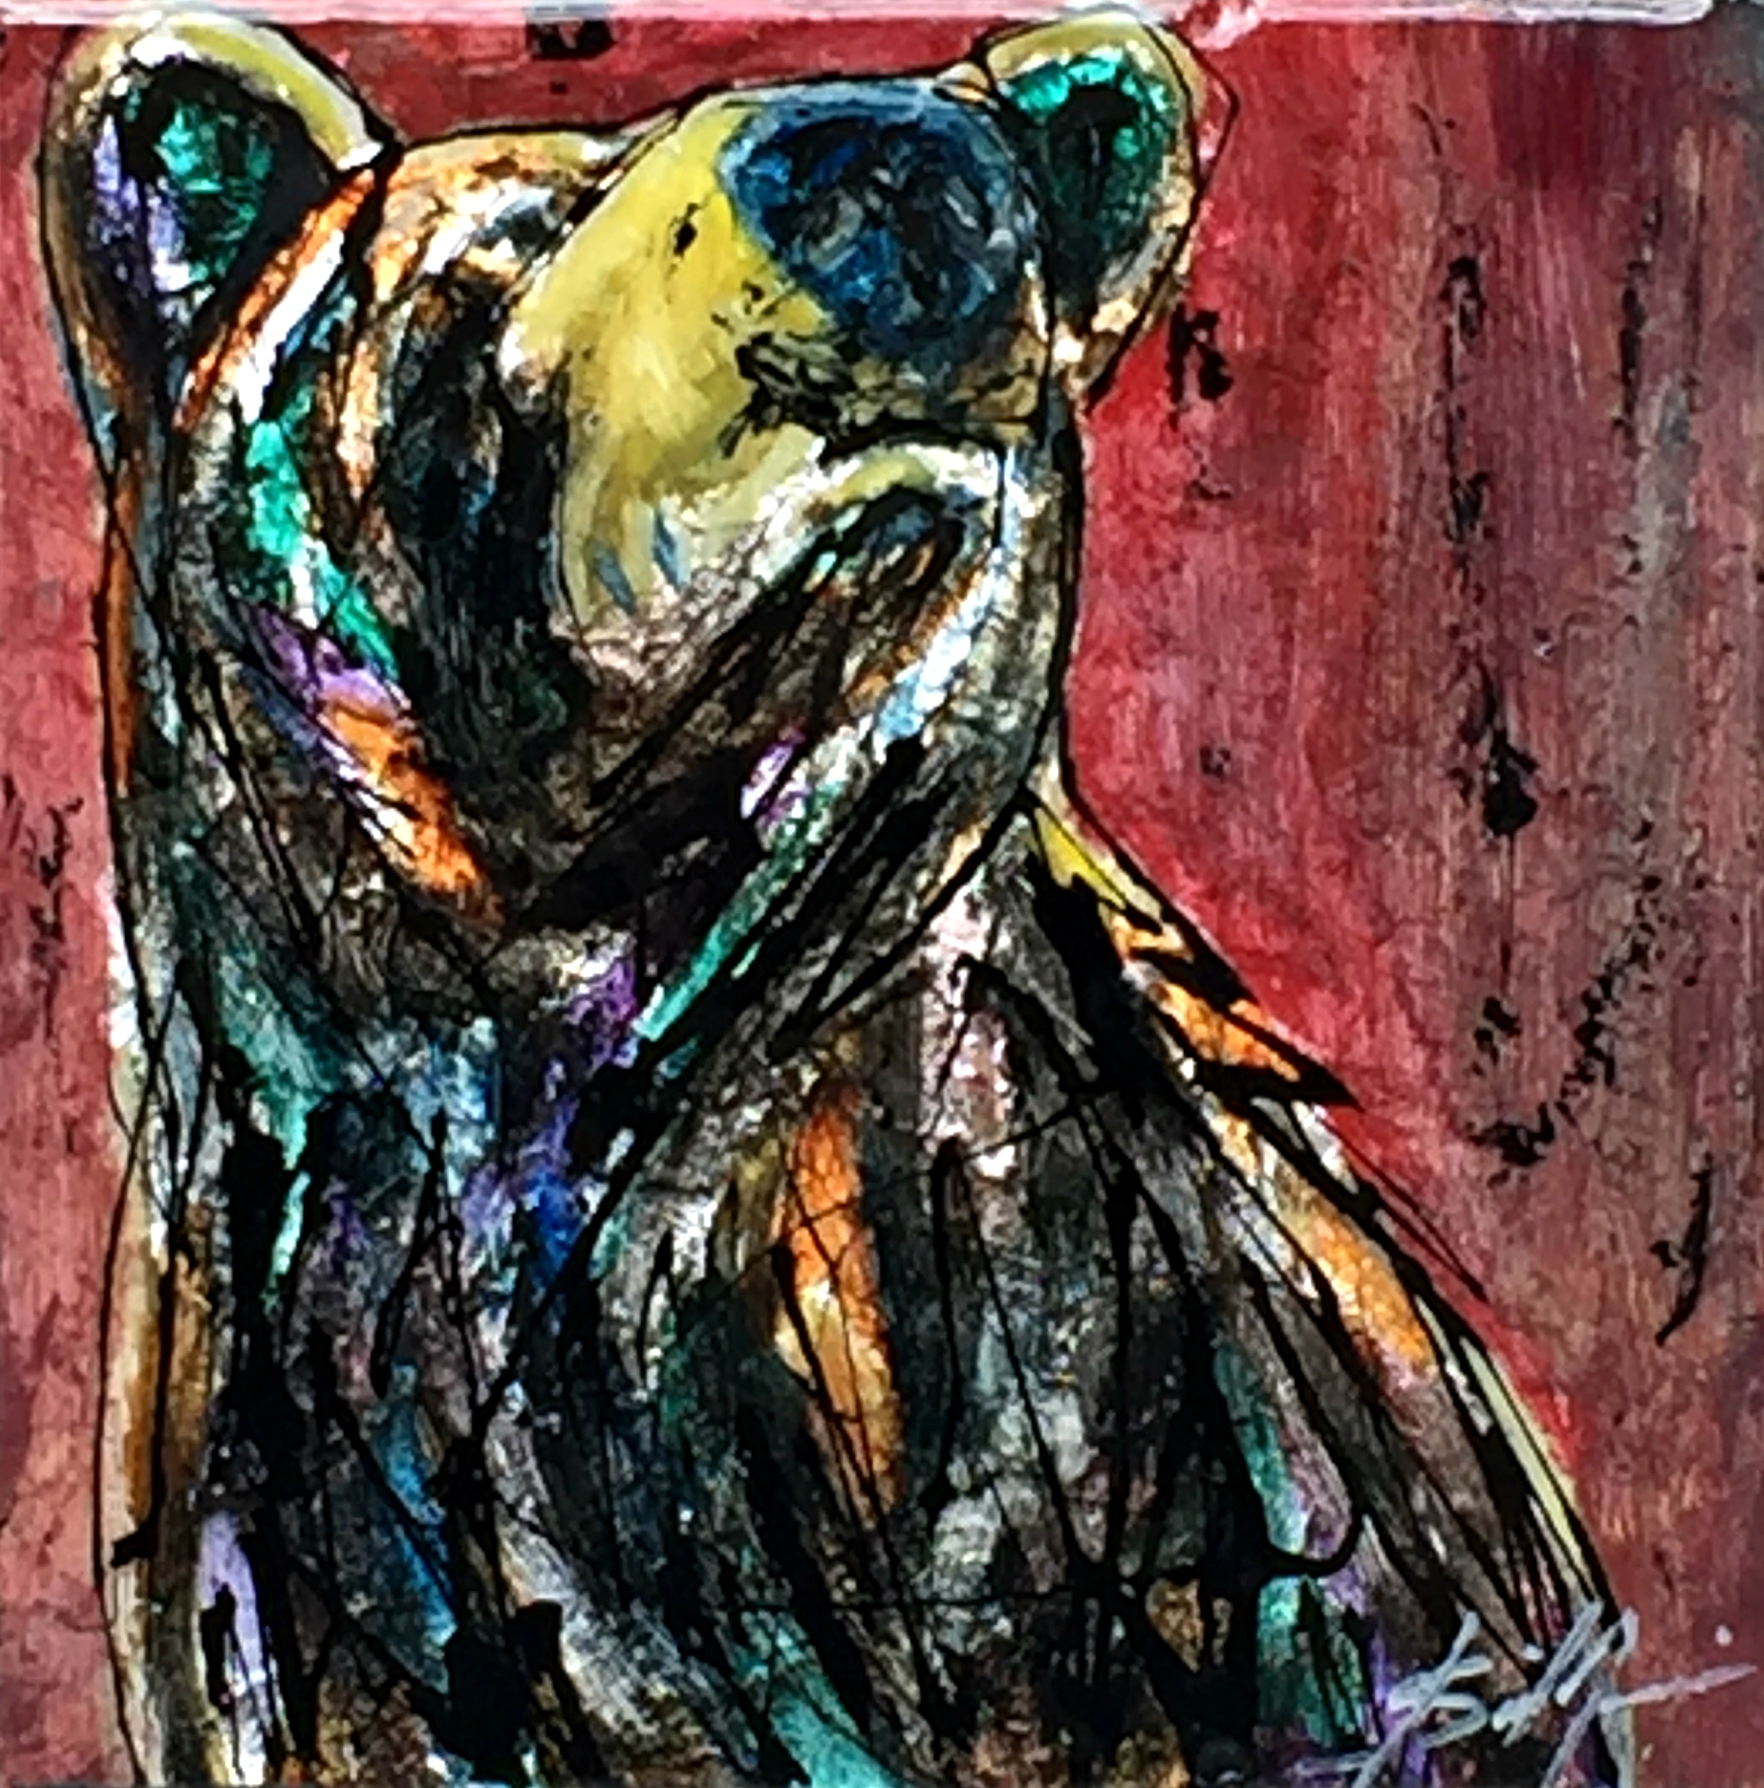 Not Interested, mixed media bear painting by David Zimmerman | Effusion Art Gallery + Cast Glass Studio, Invermere BC